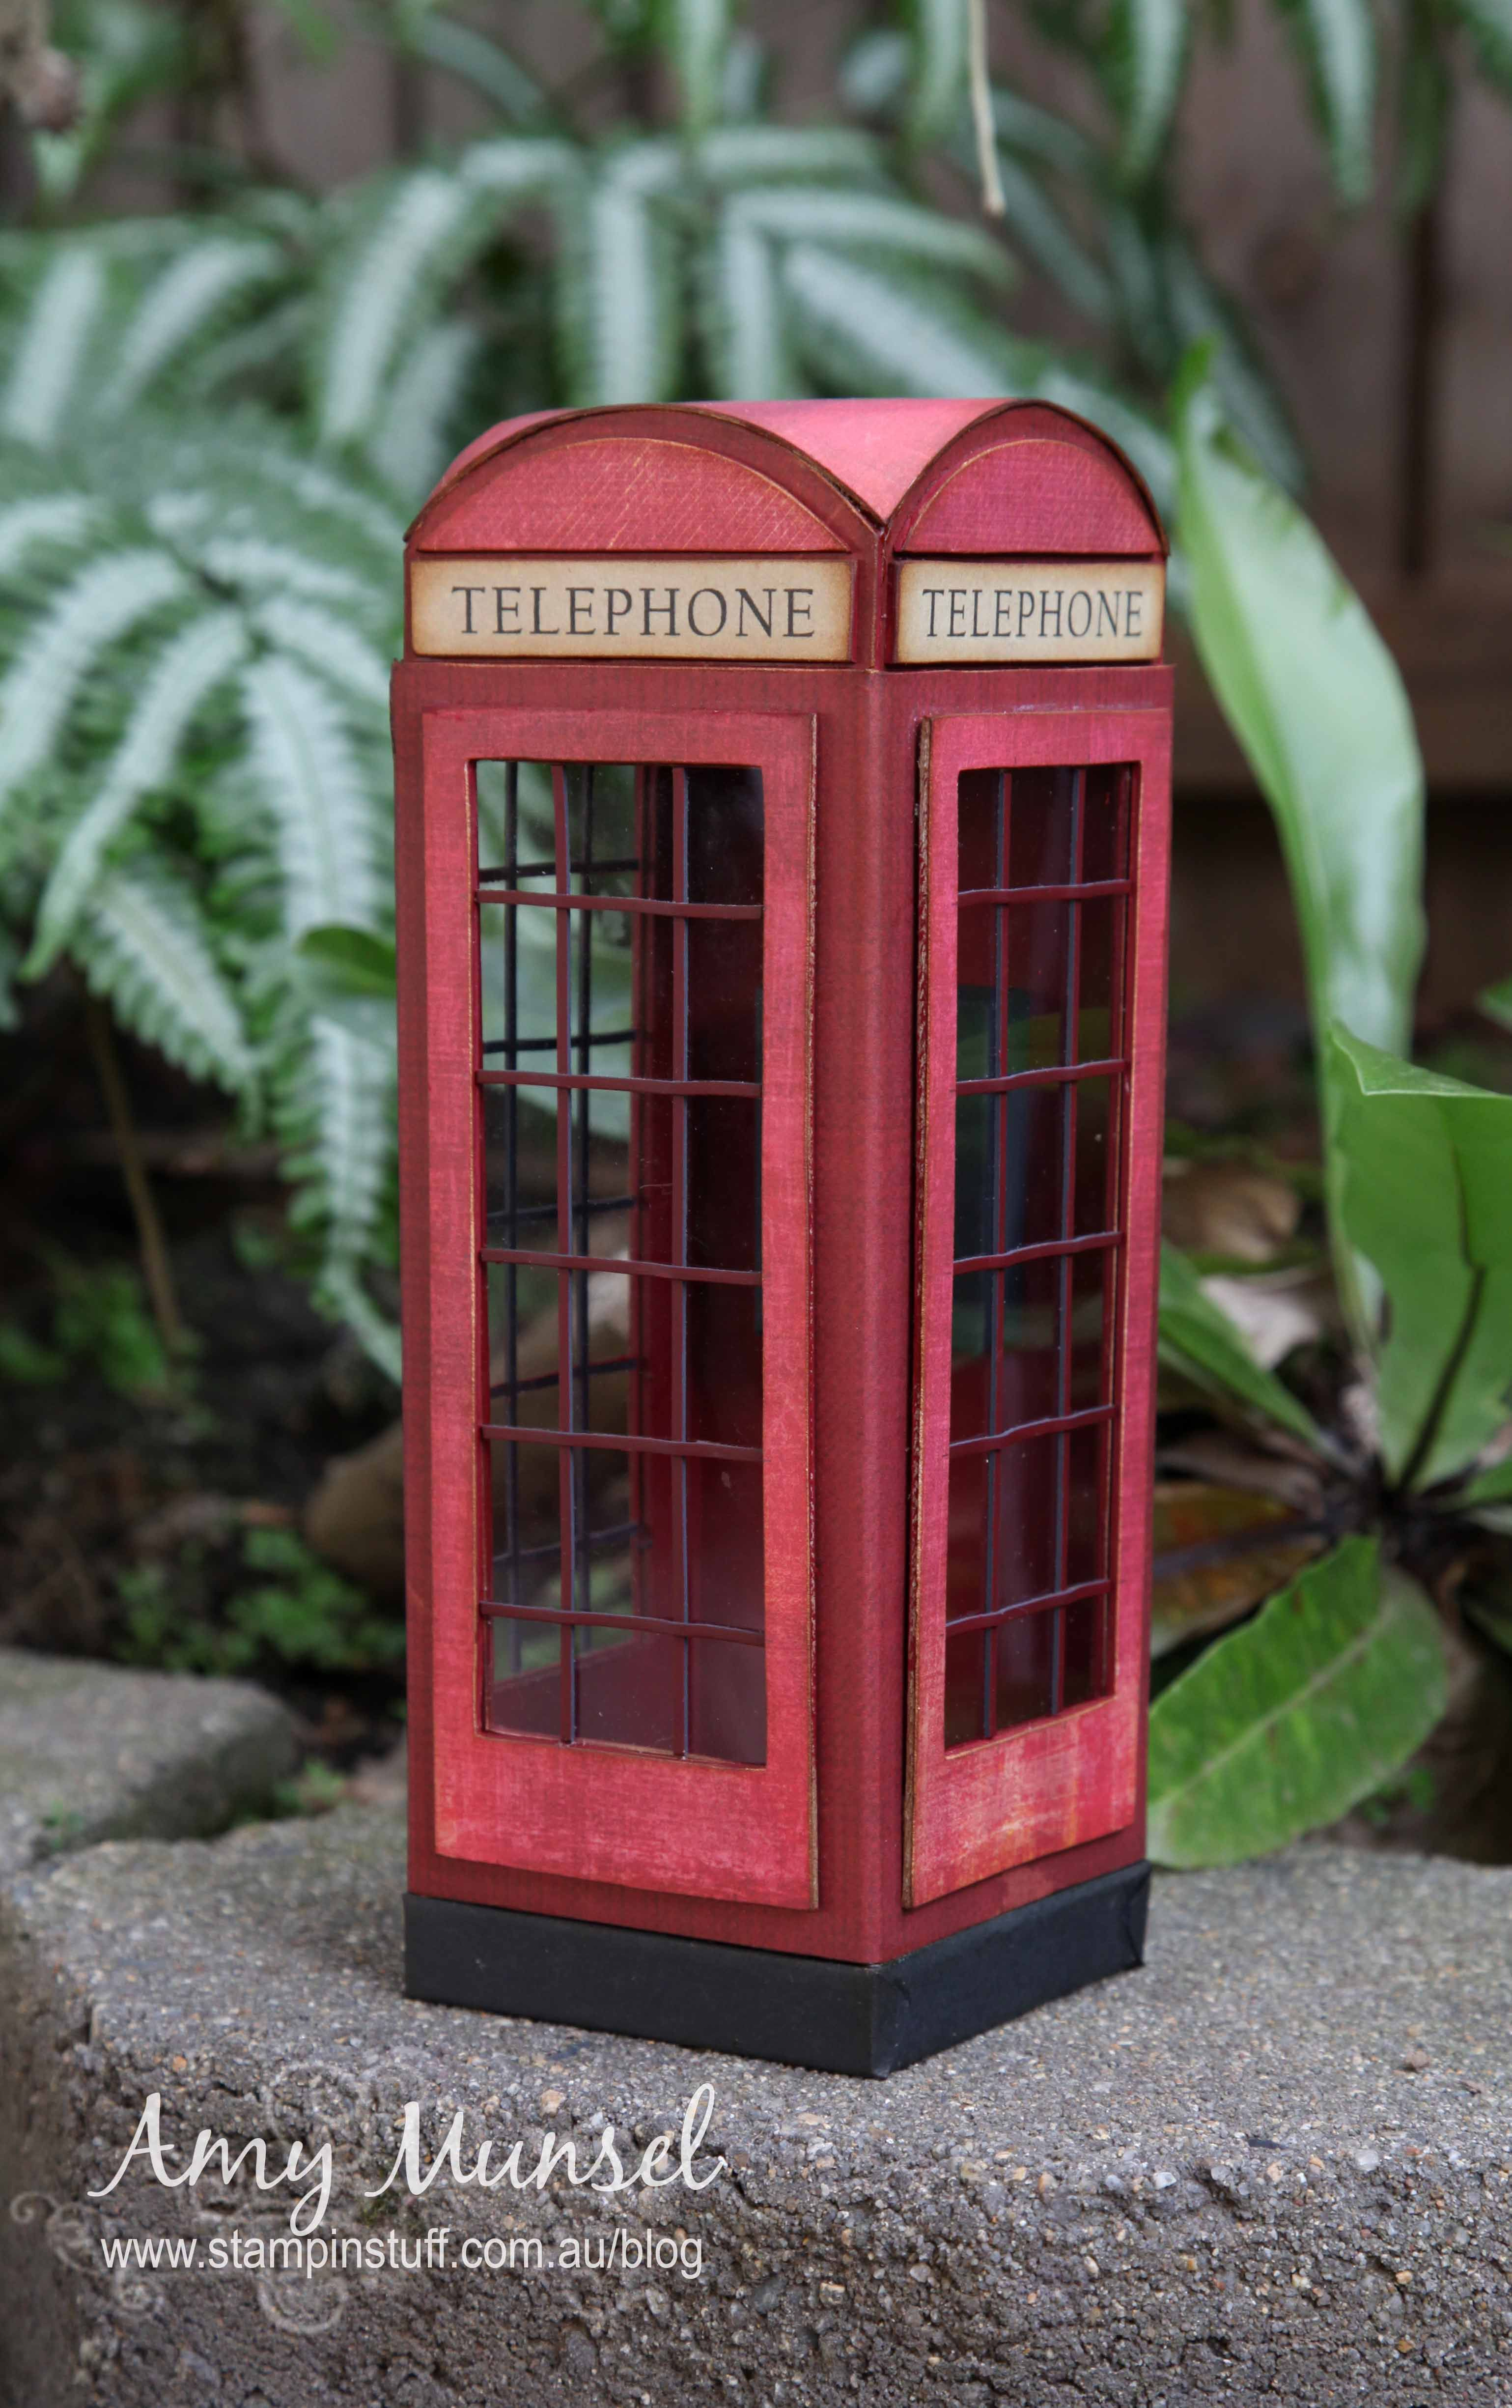 Scrapbook paper england - London Telephone Booth Made From Scratch Using Scrapbook Paper And Chipboard